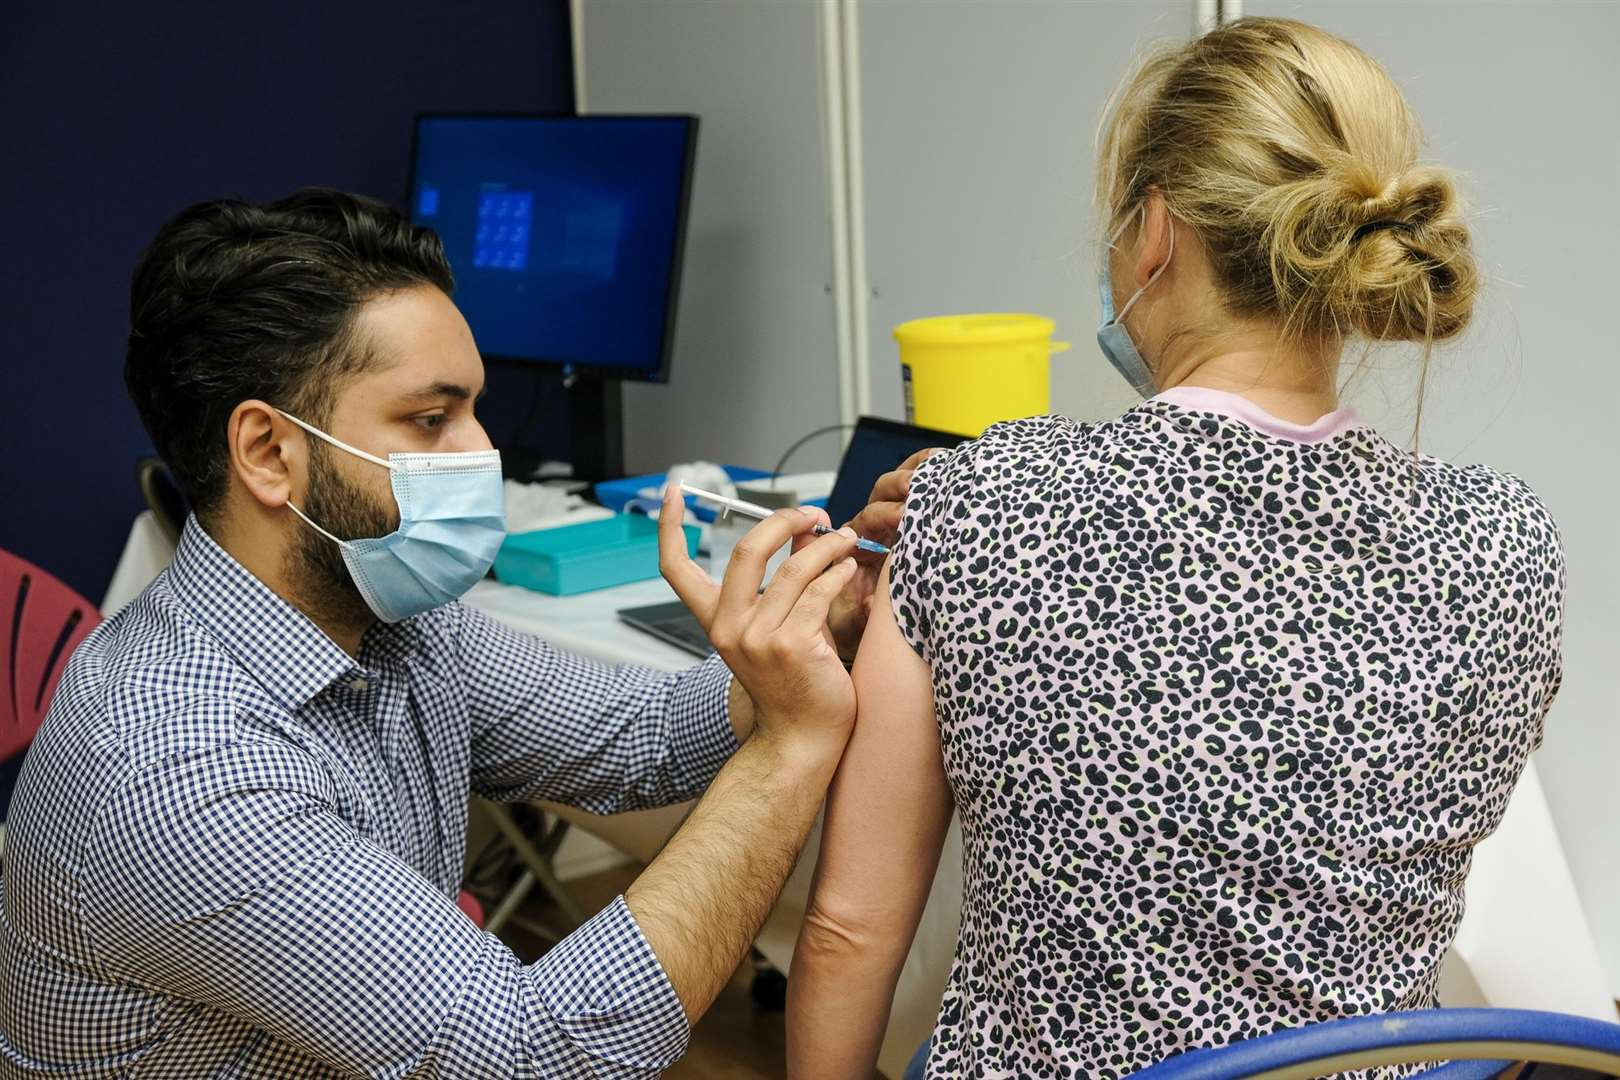 A vaccination agent injects a patient.